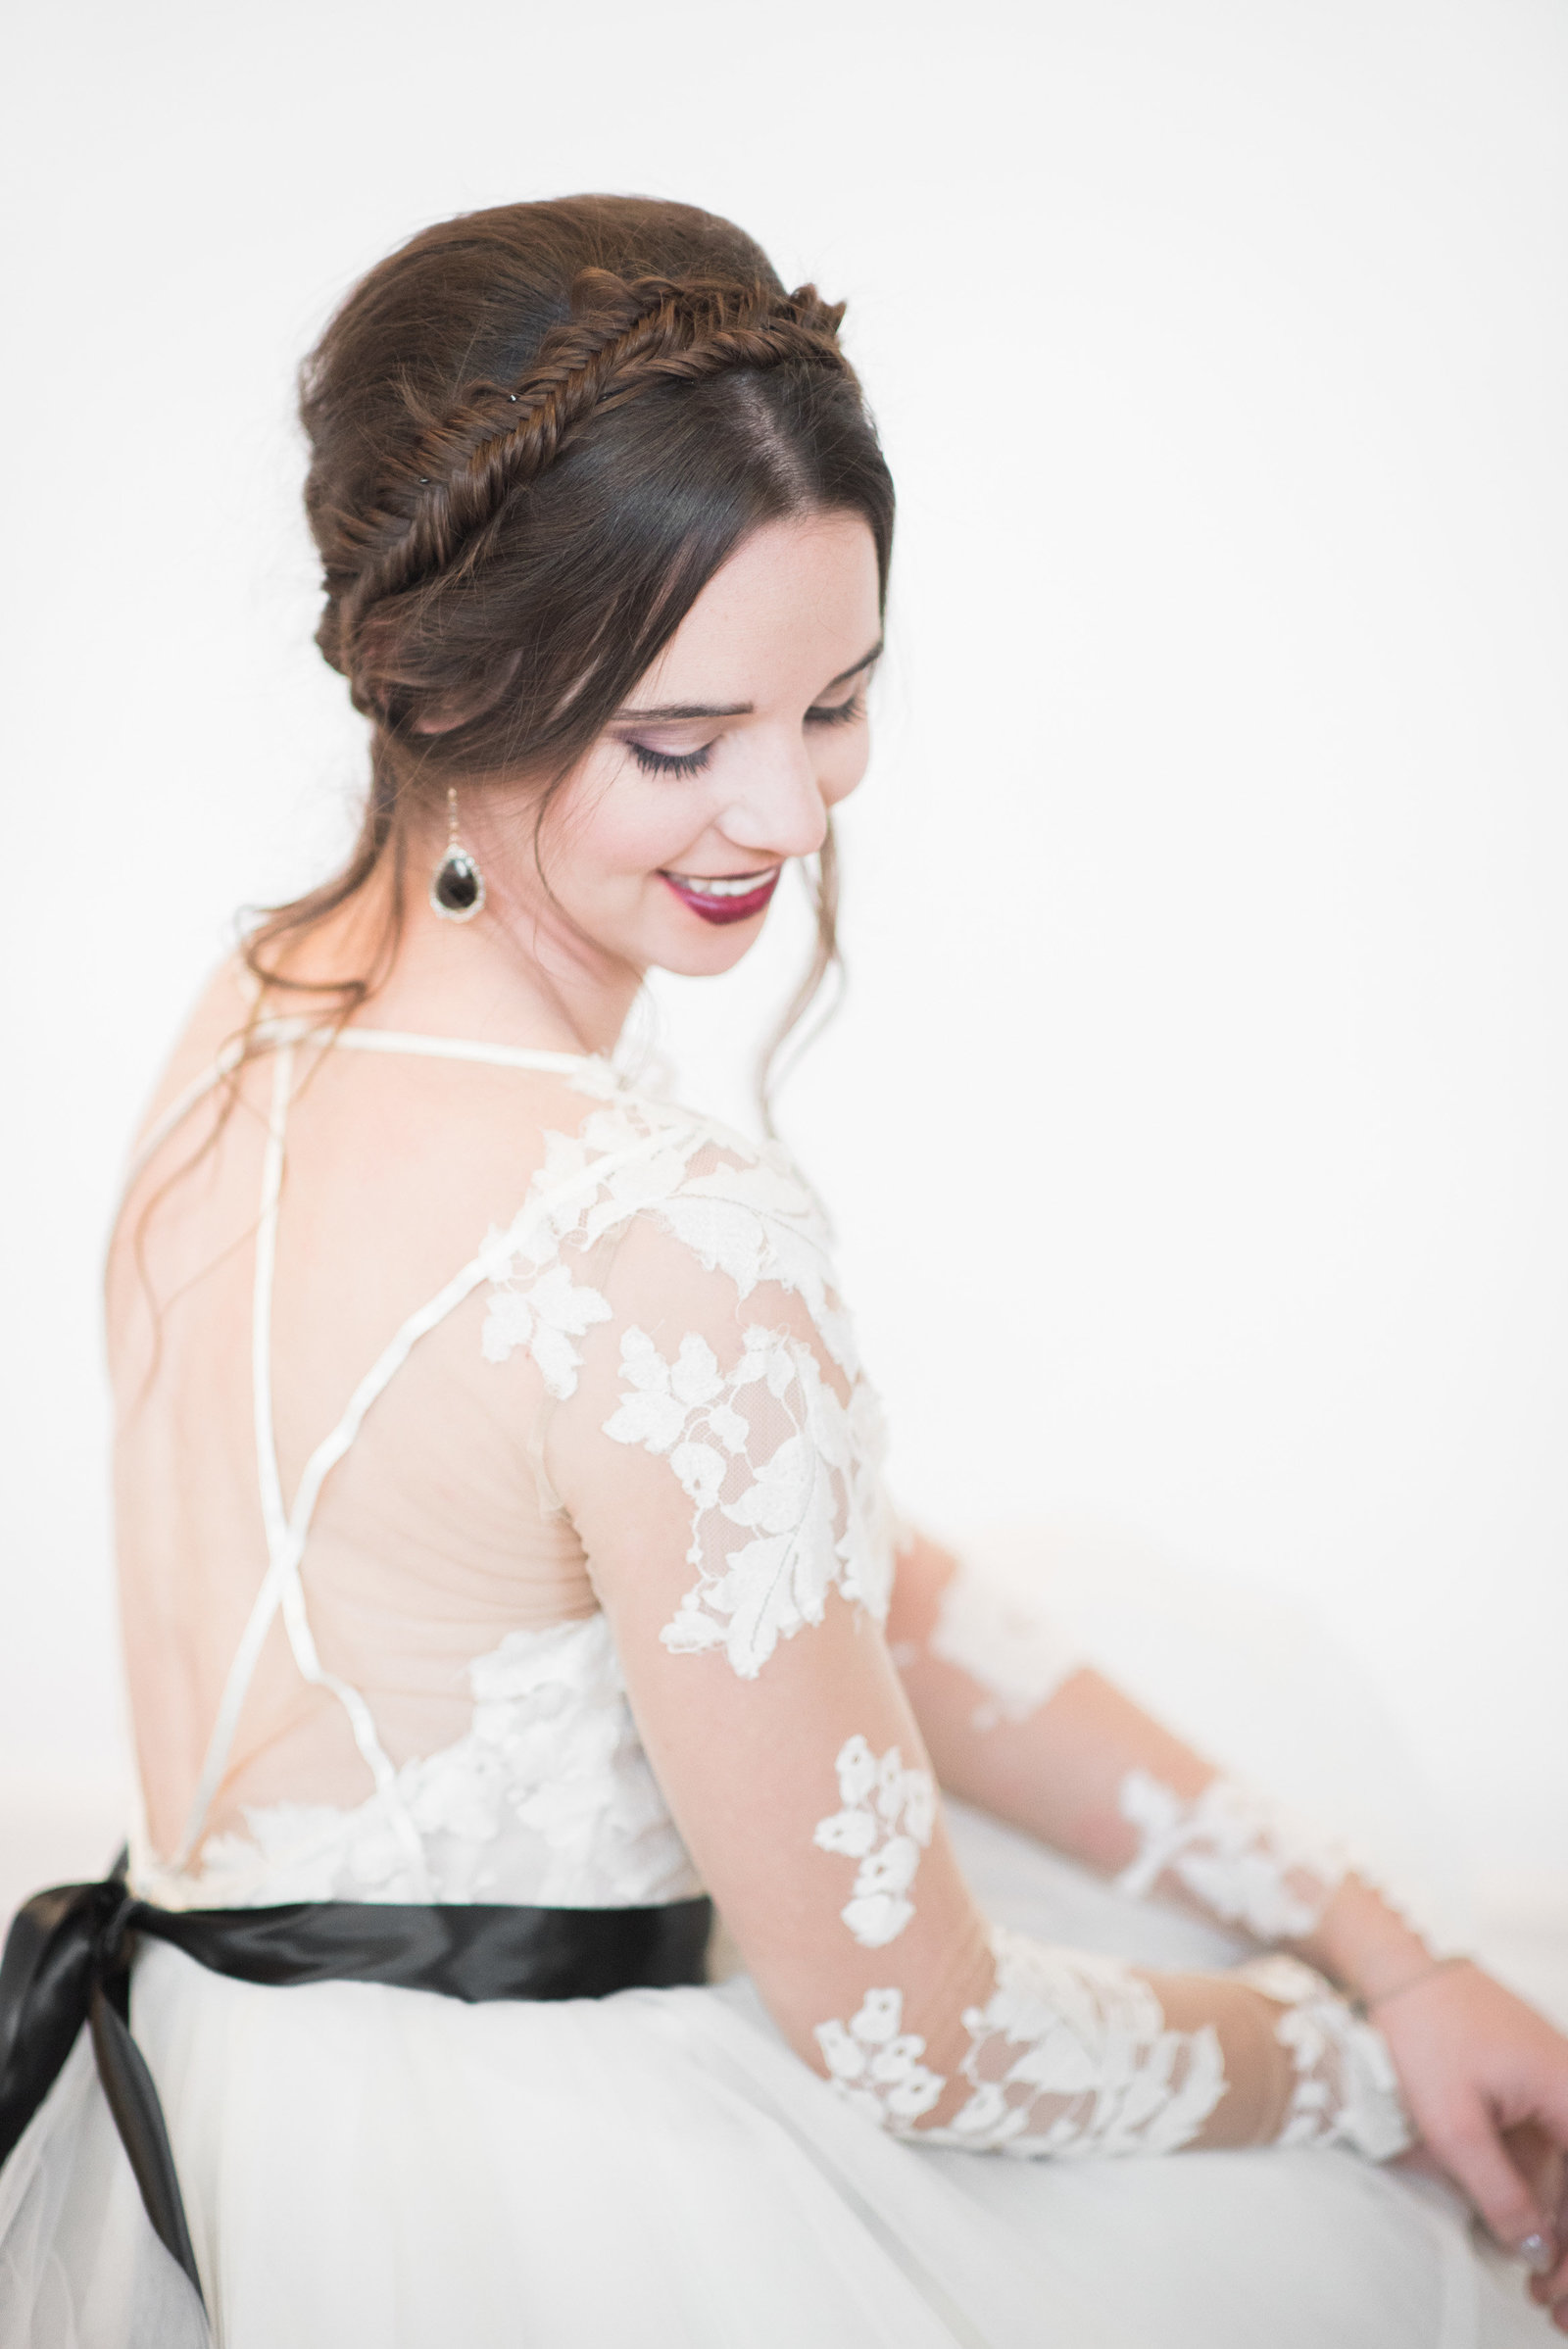 Tucson La Mariposa Wedding Photo of Bride wearing lace wedding dress | Tucson Wedding Photographer | West End Photography